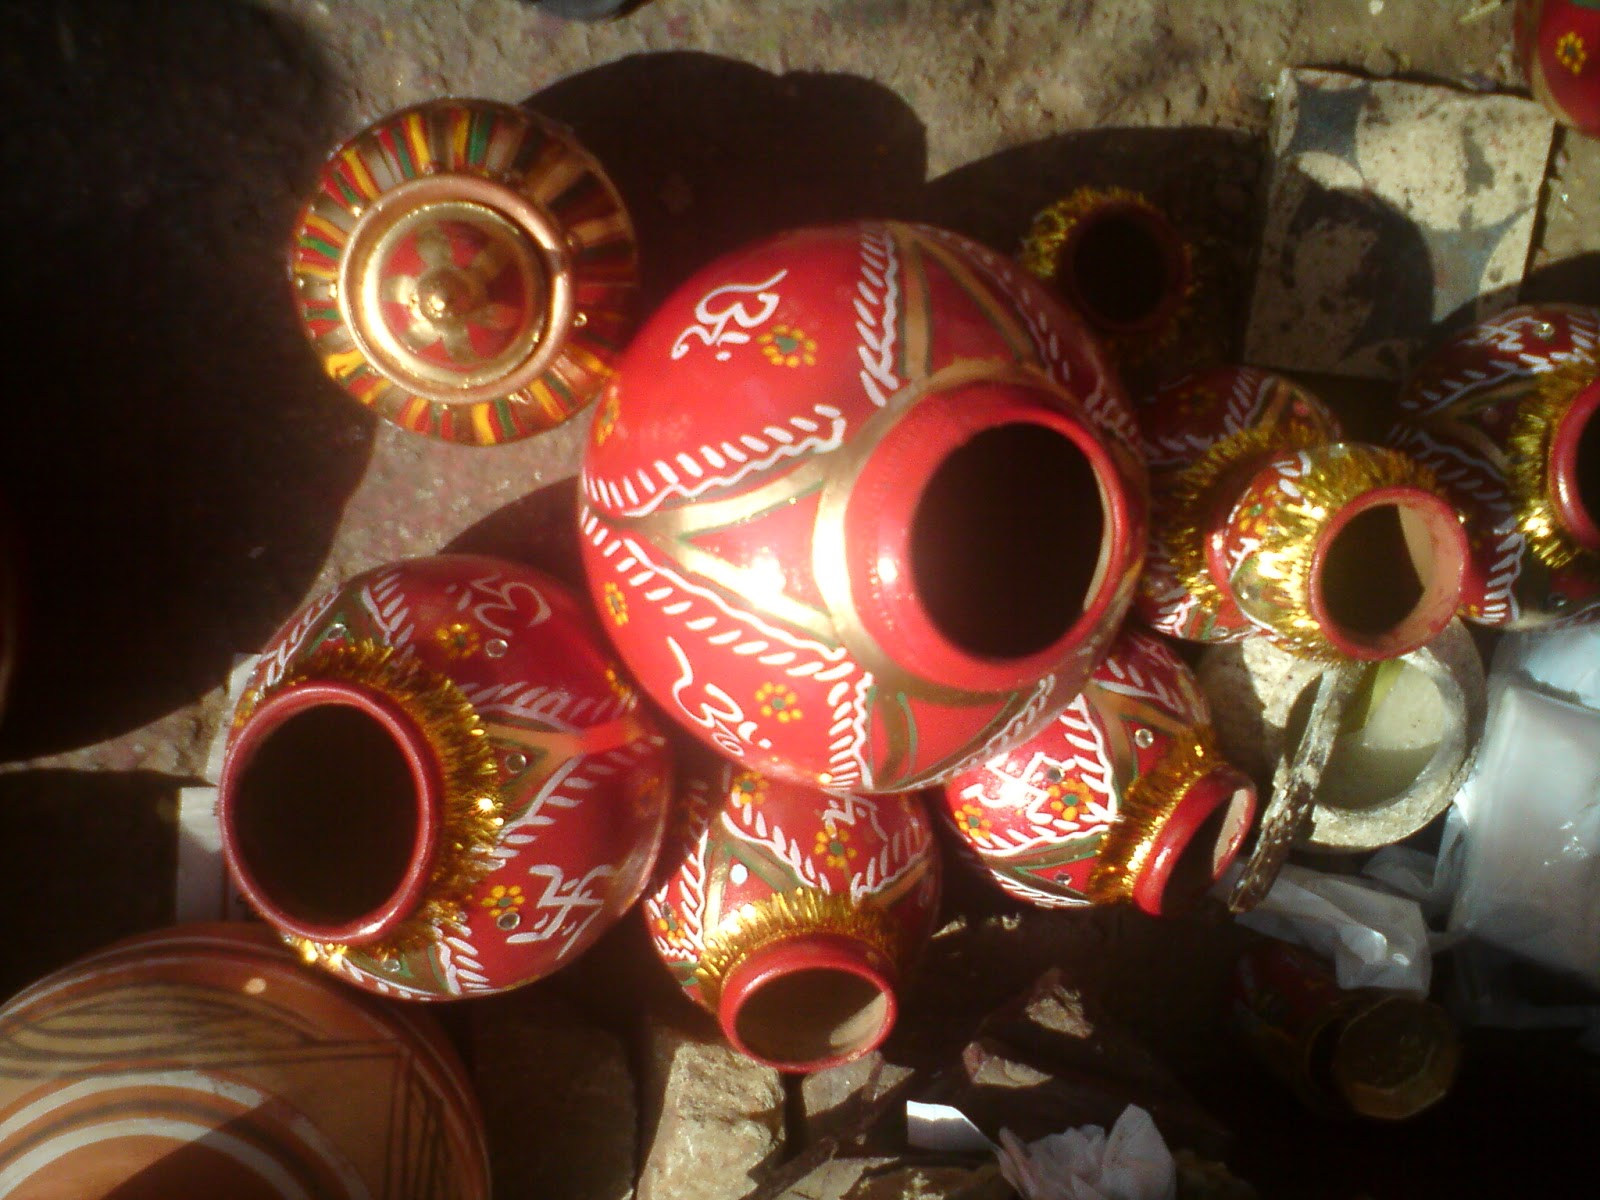 The finished earthen pots being dried in the sun